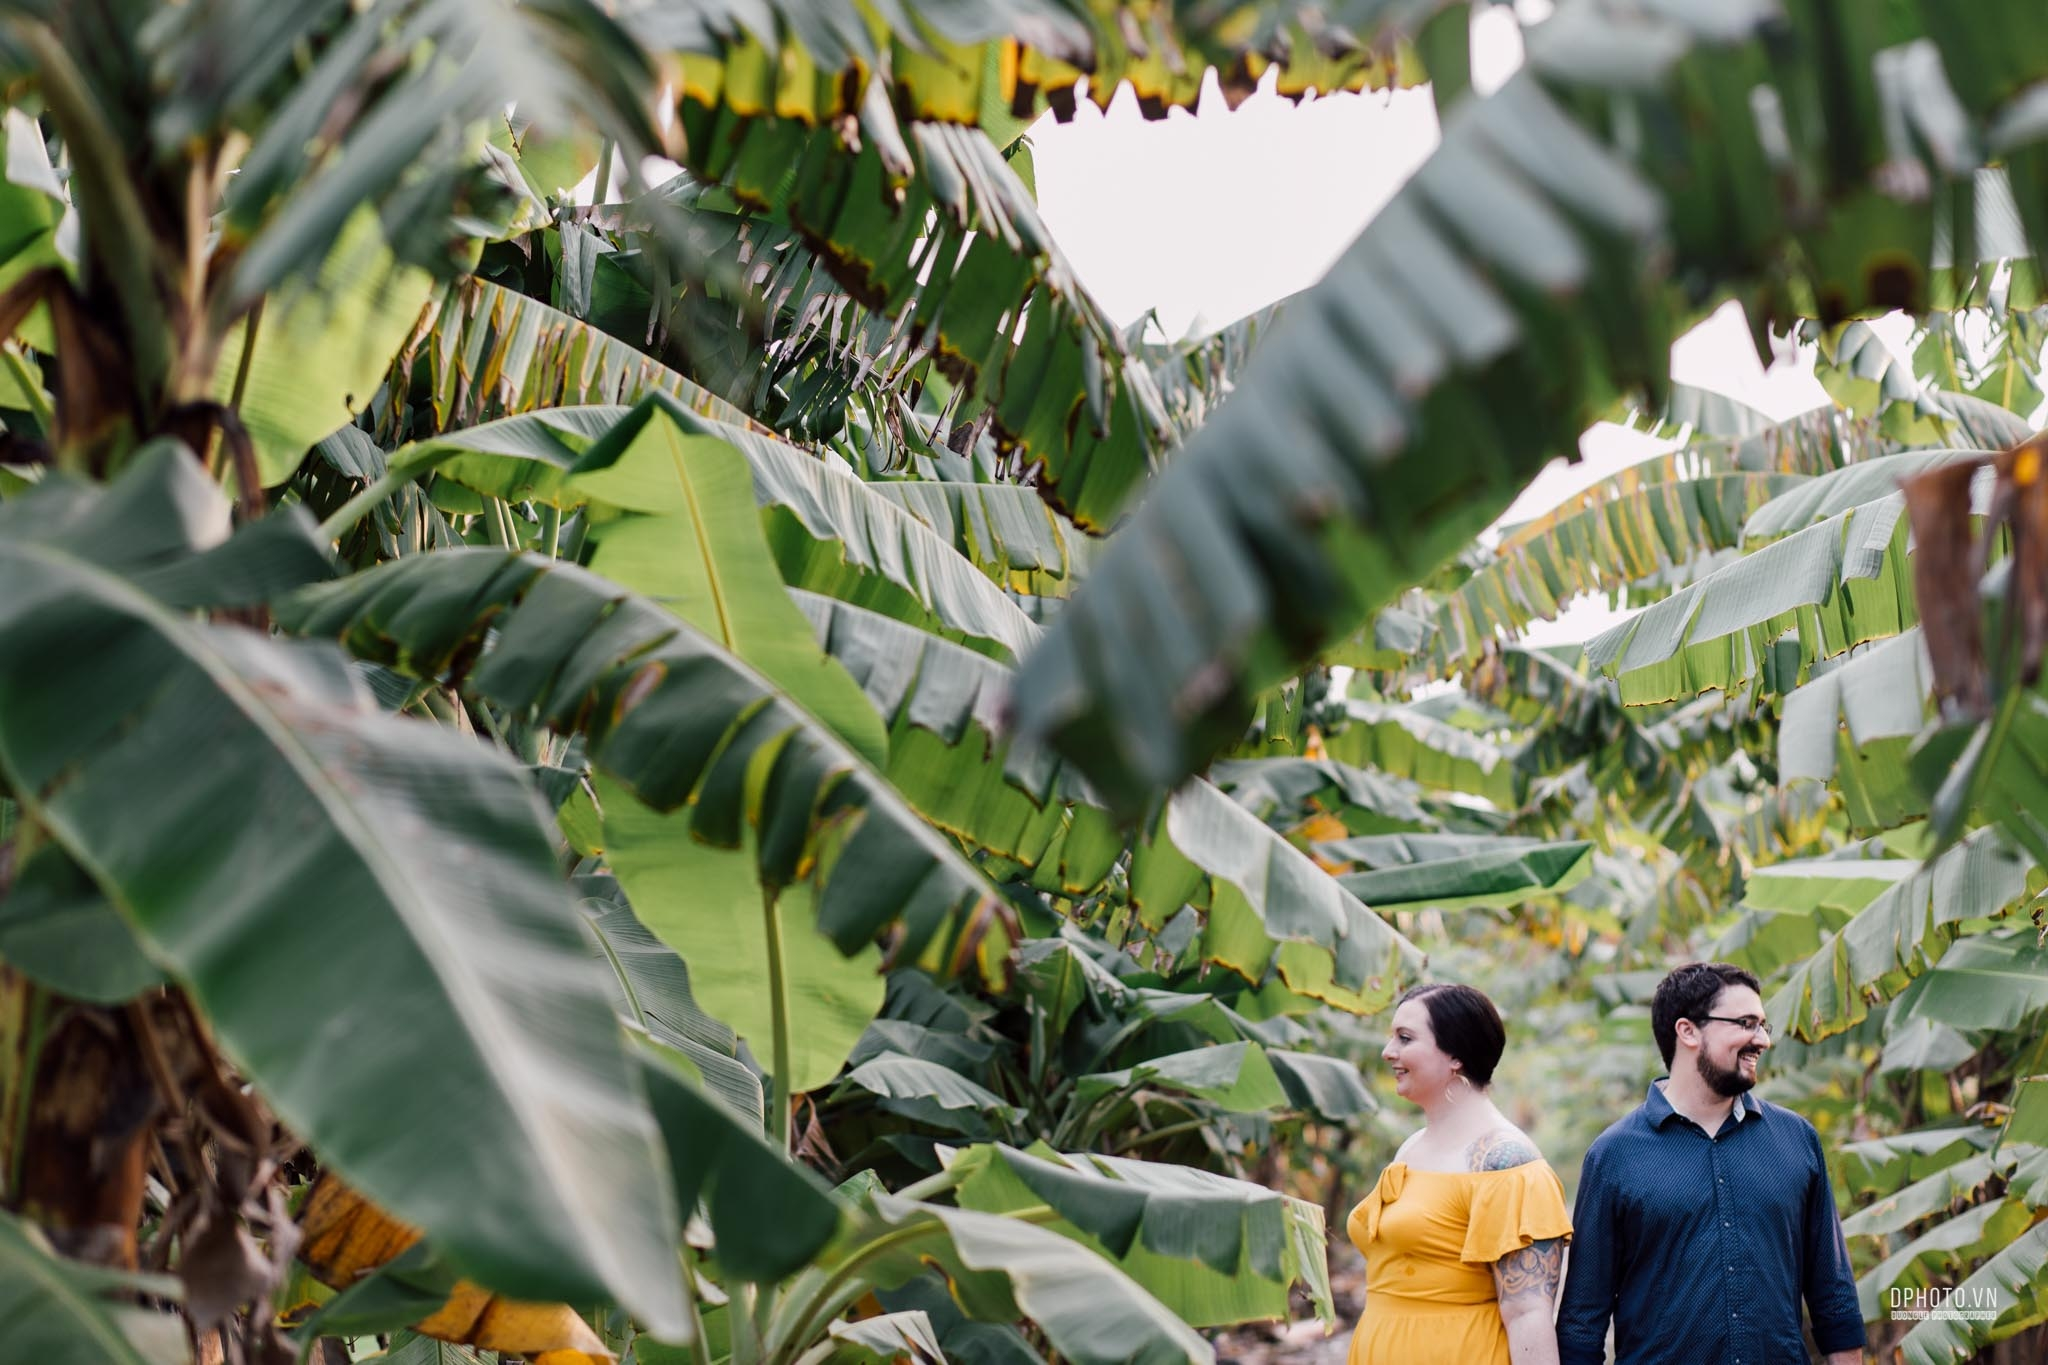 engagement_photo_in_sai_gon_ho_chi_minh_viet_nam68